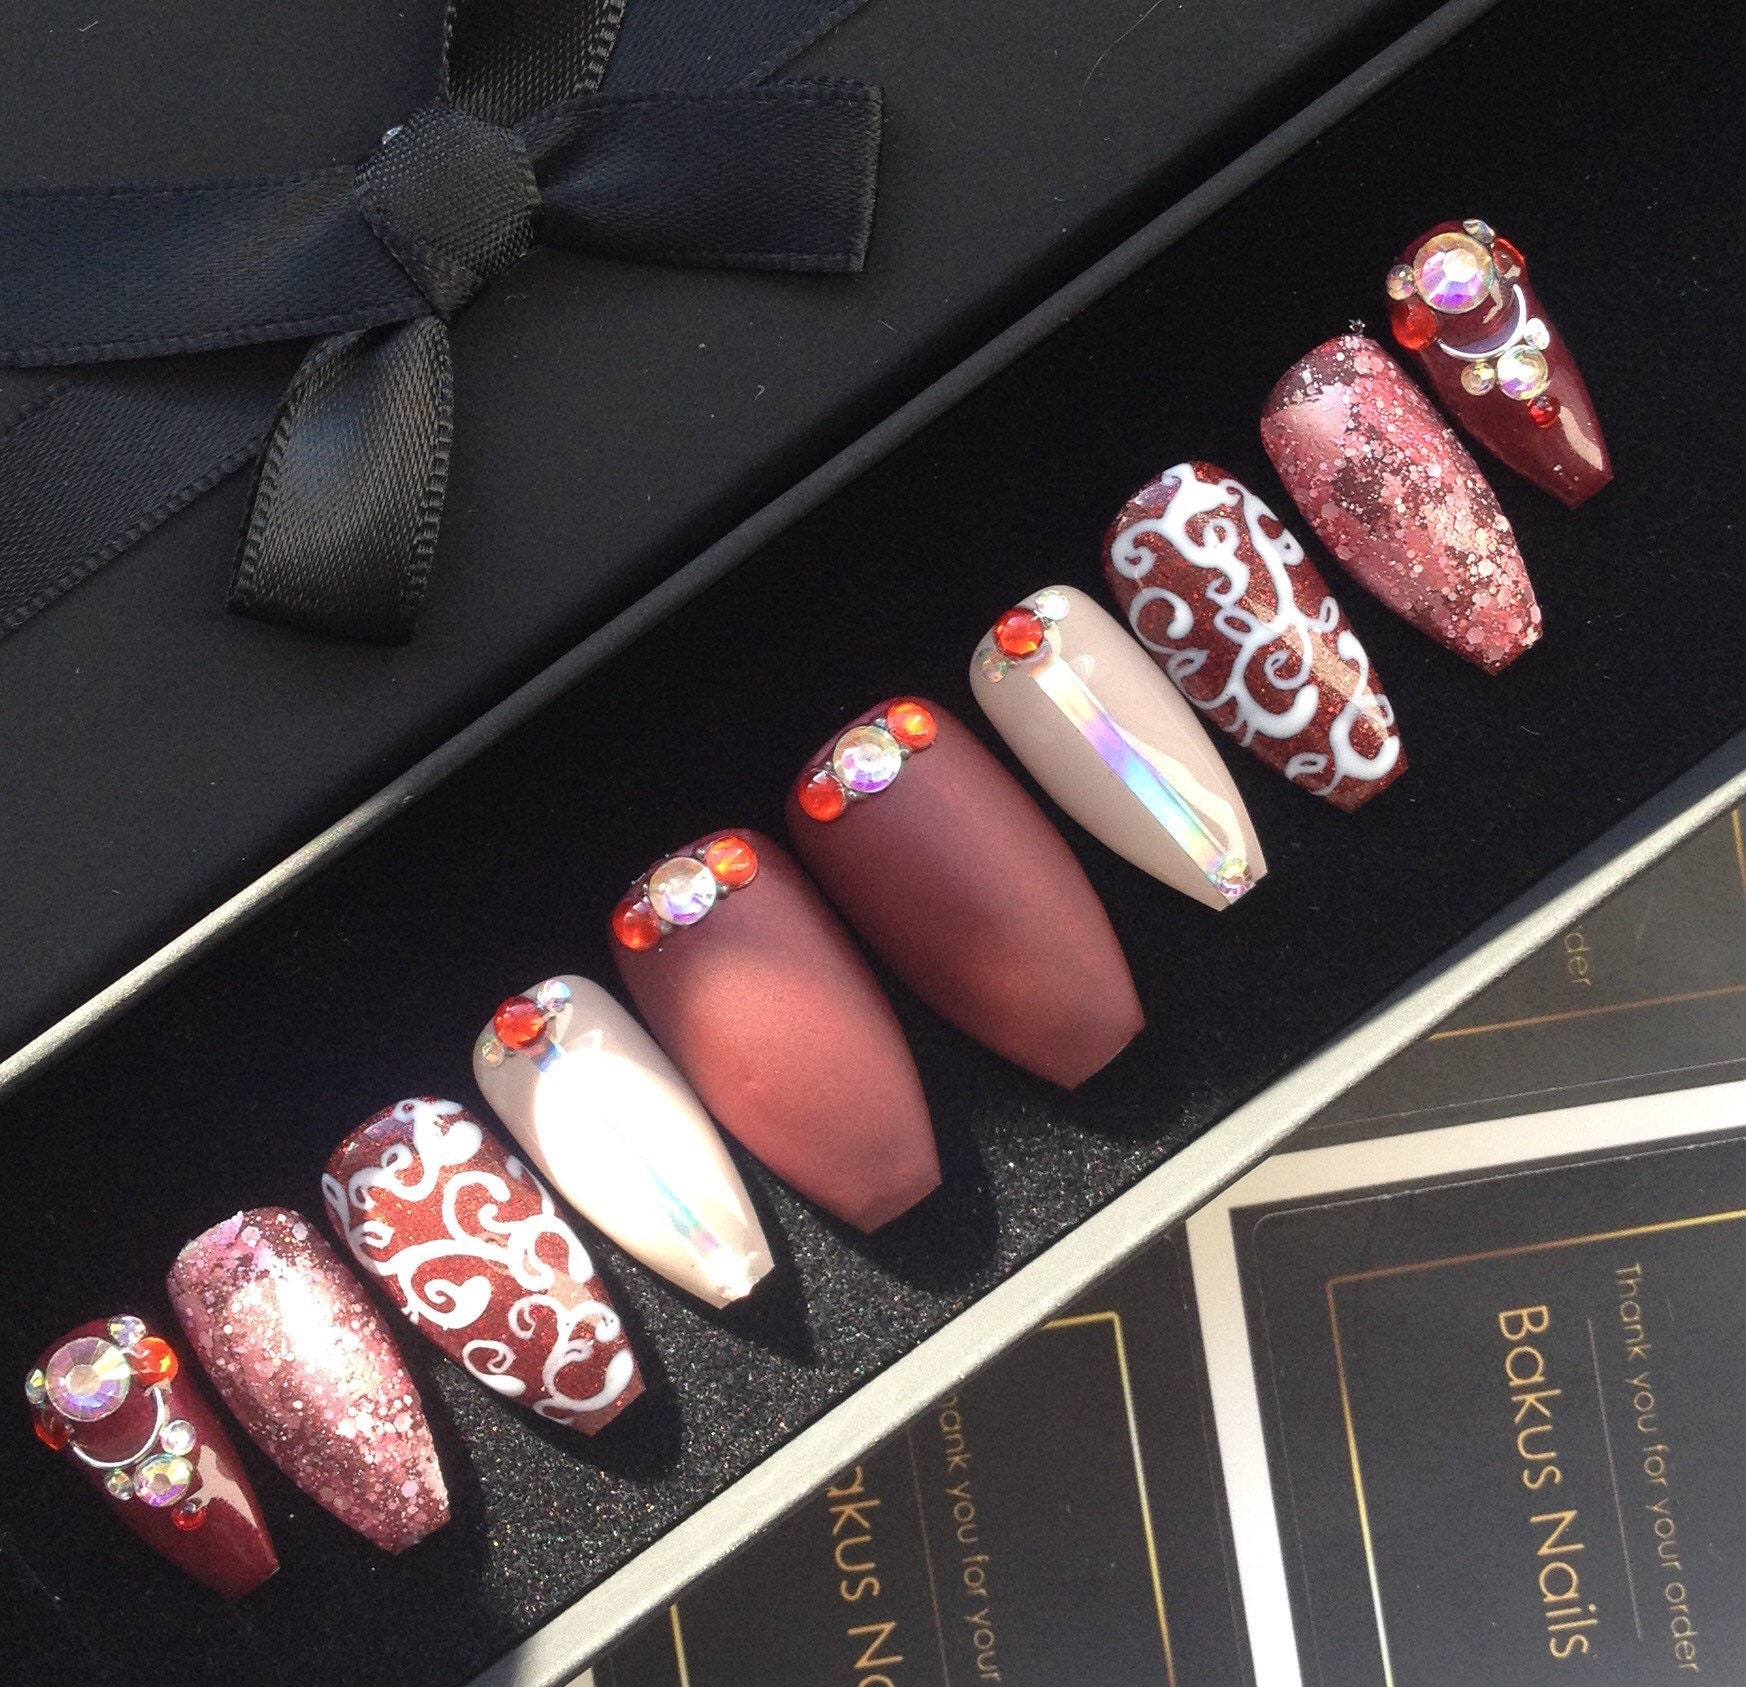 Hand Painted Press On Nails False Nails Medium Length Coffin shape ...